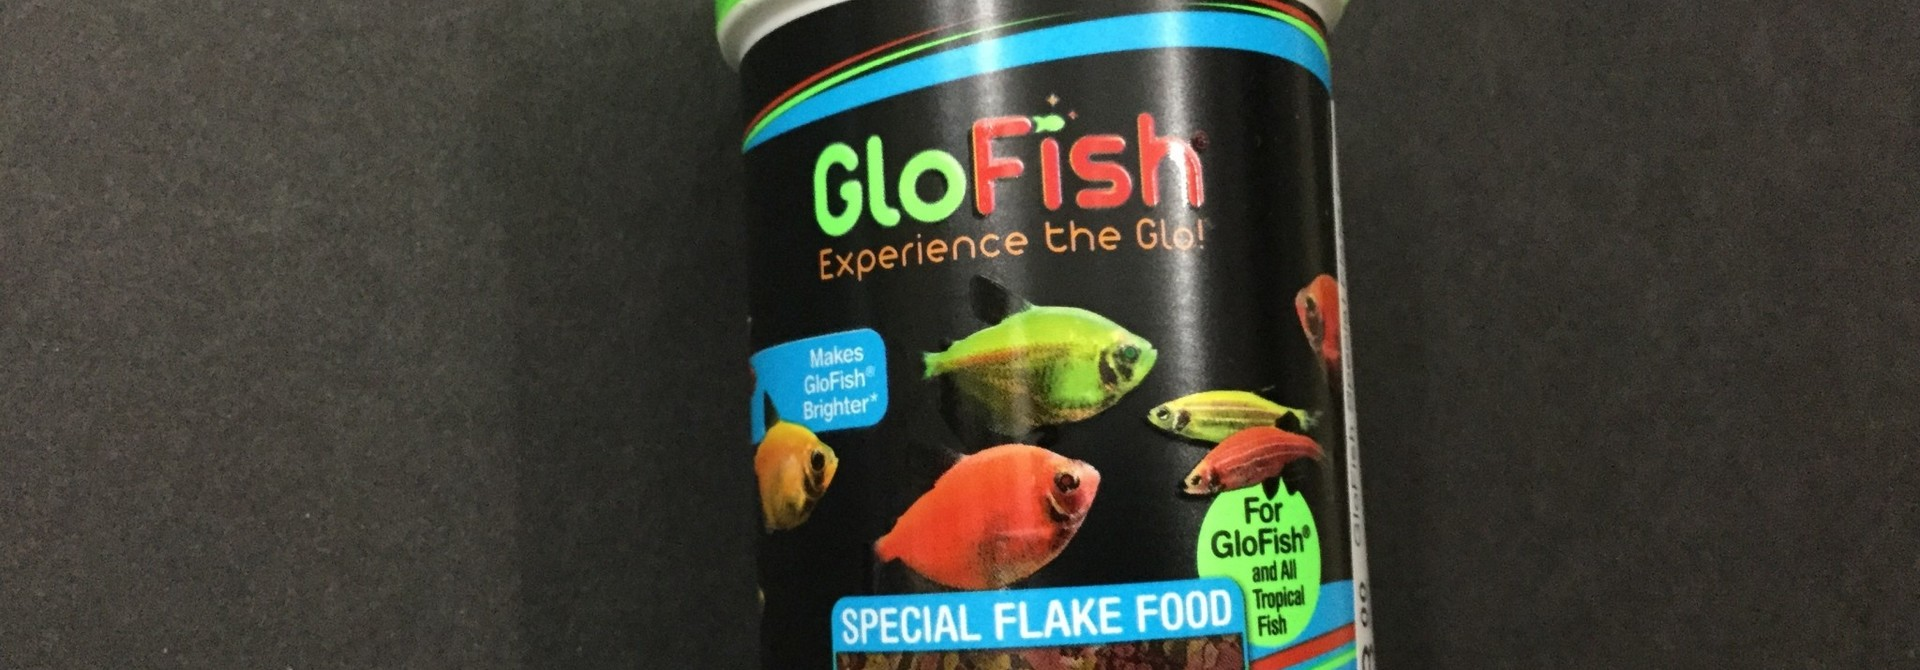 GloFish Special Flake Food